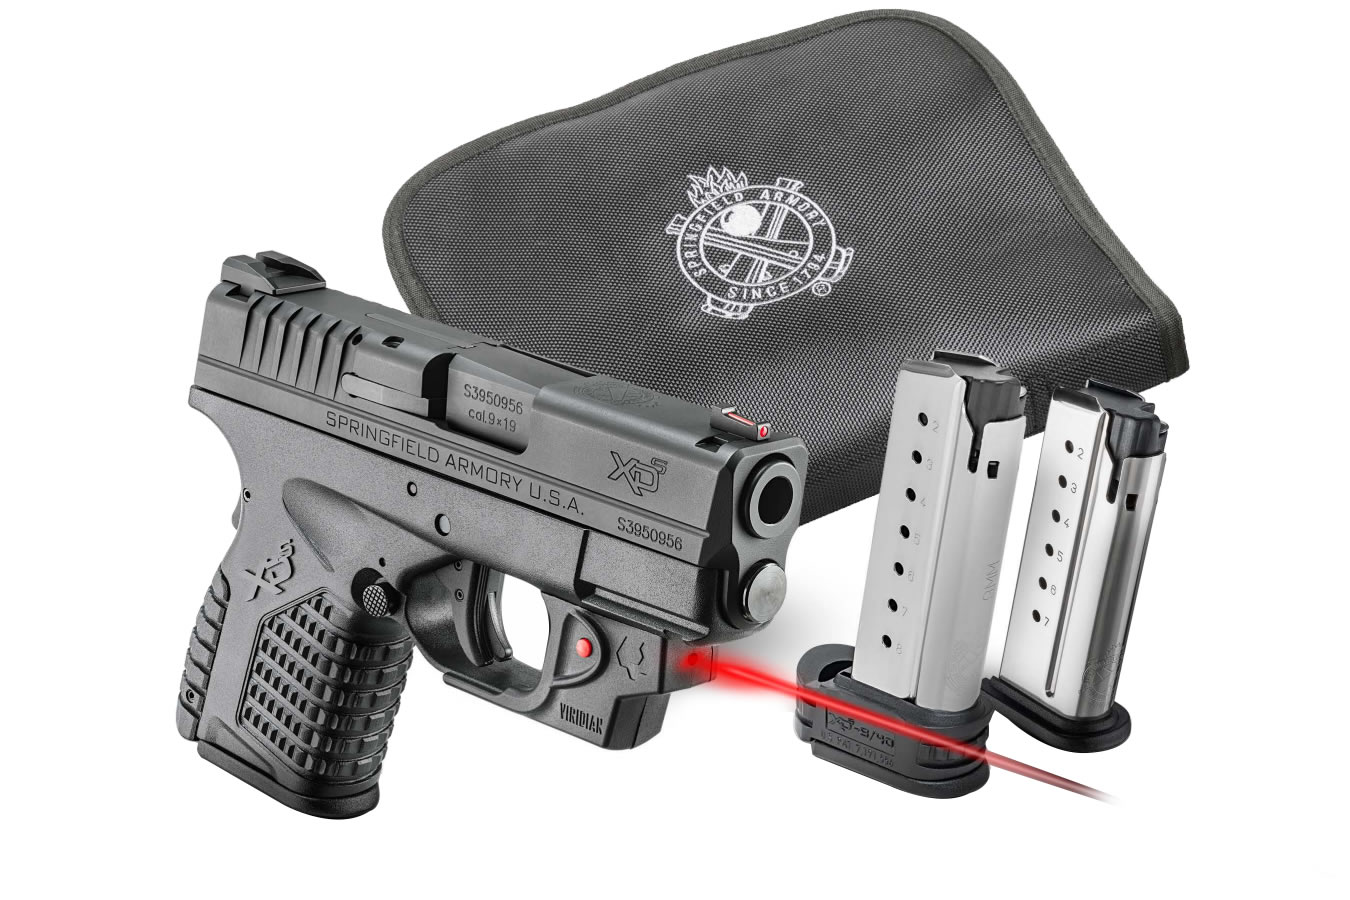 XDS 3.3 45 ACP WITH VIRIDIAN LASER